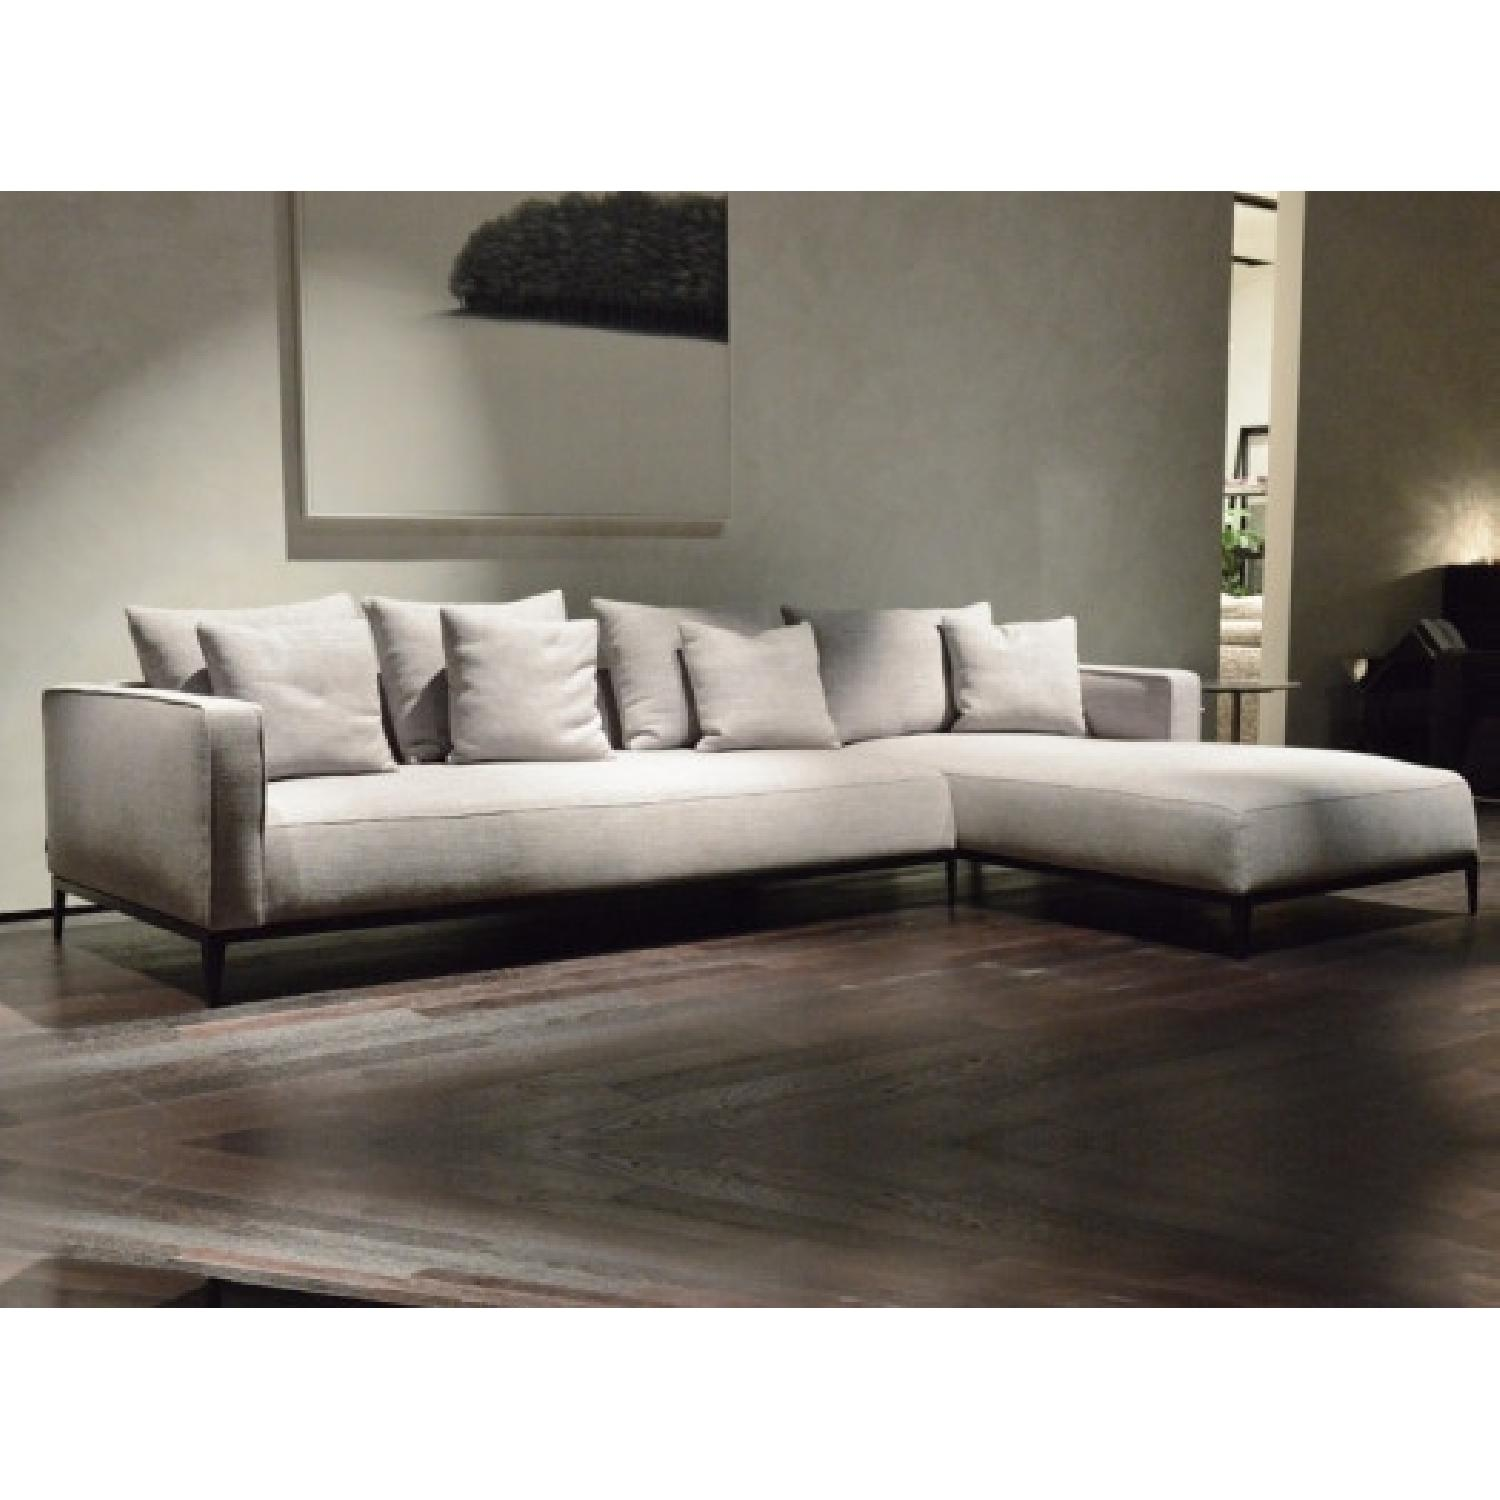 sohoConcept California Large Left Arm Chaise Sectional Sofa - image-1